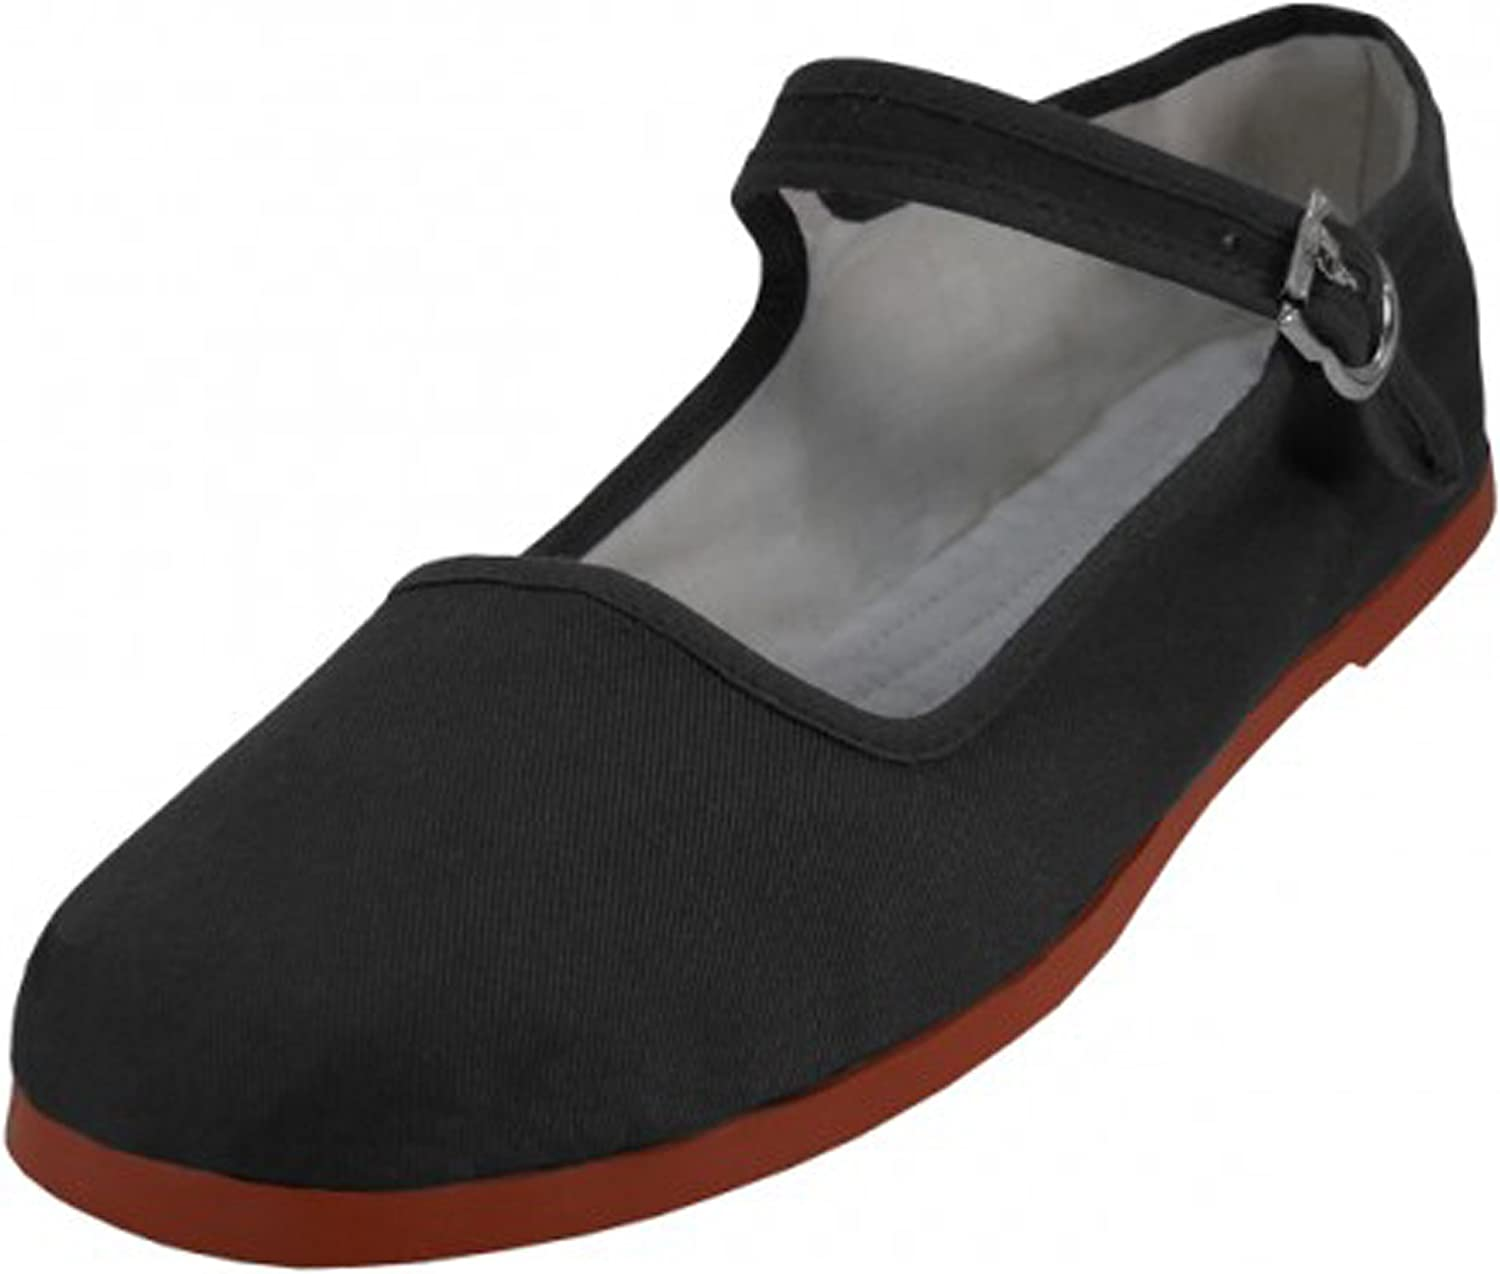 11, 114 Black Easy USA Womens Cotton Mary Jane Shoes Ballerina Ballet Flats Shoes